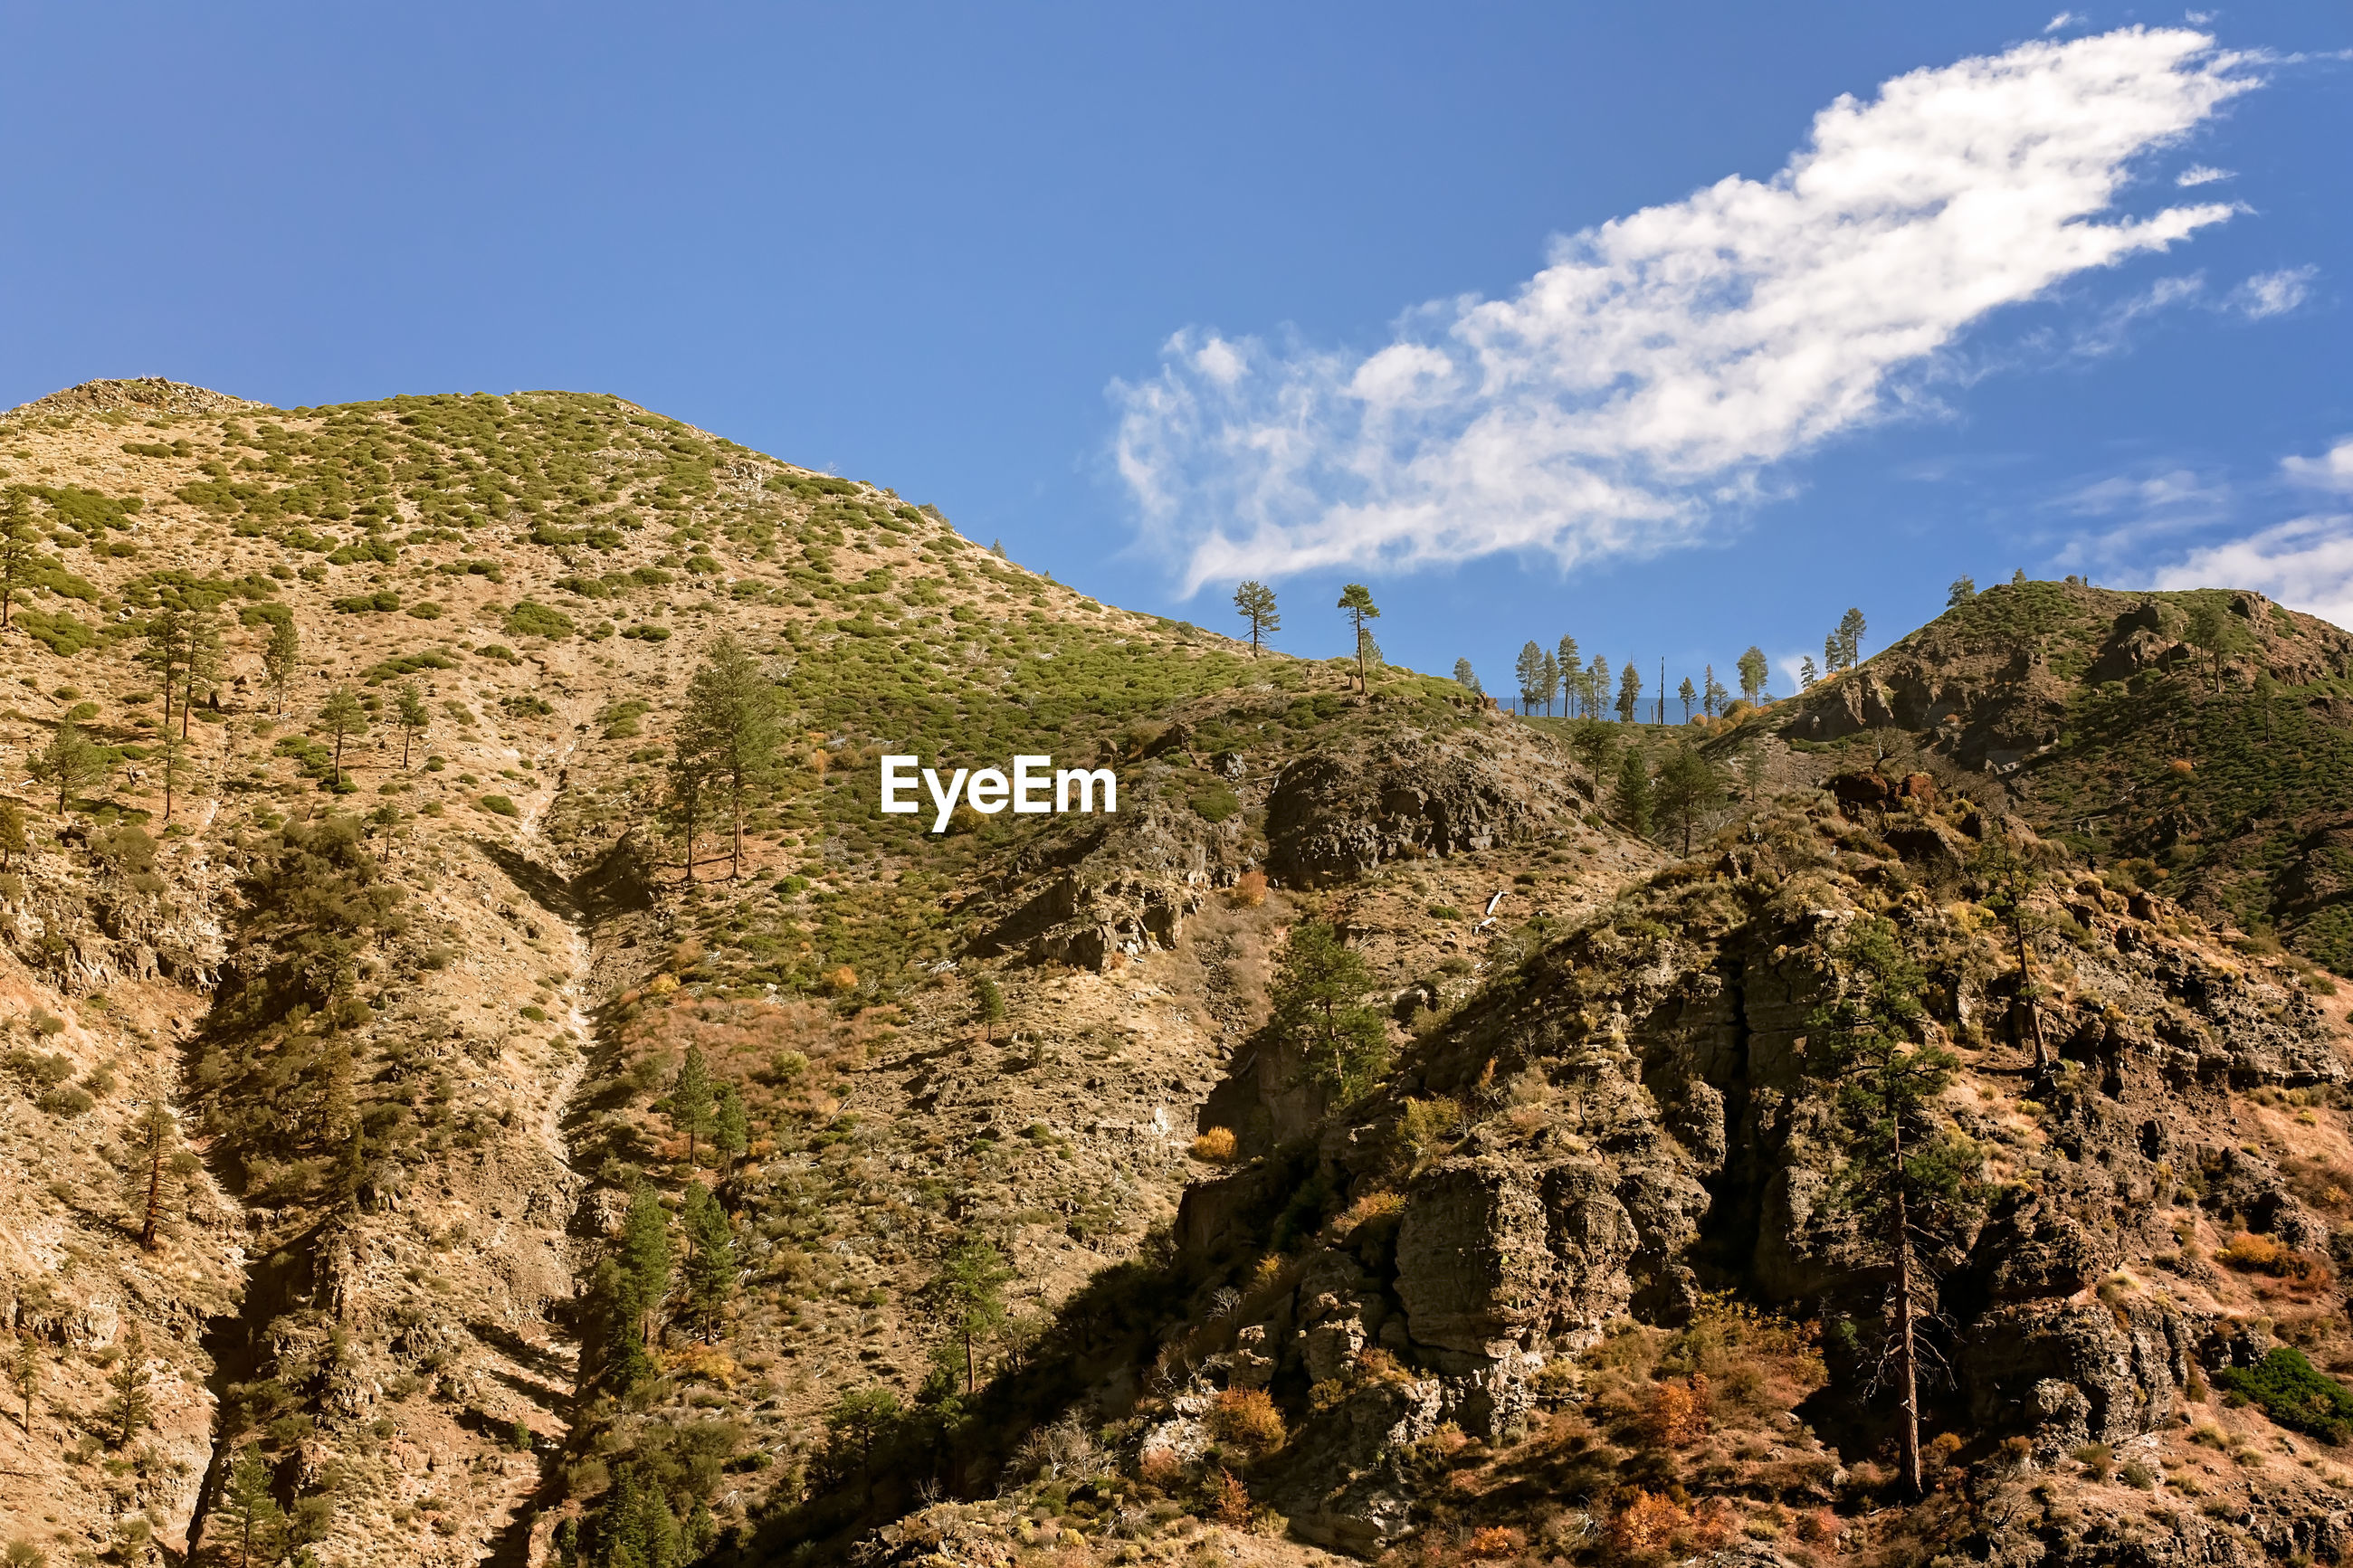 LOW ANGLE VIEW OF ROCKS ON MOUNTAIN AGAINST SKY